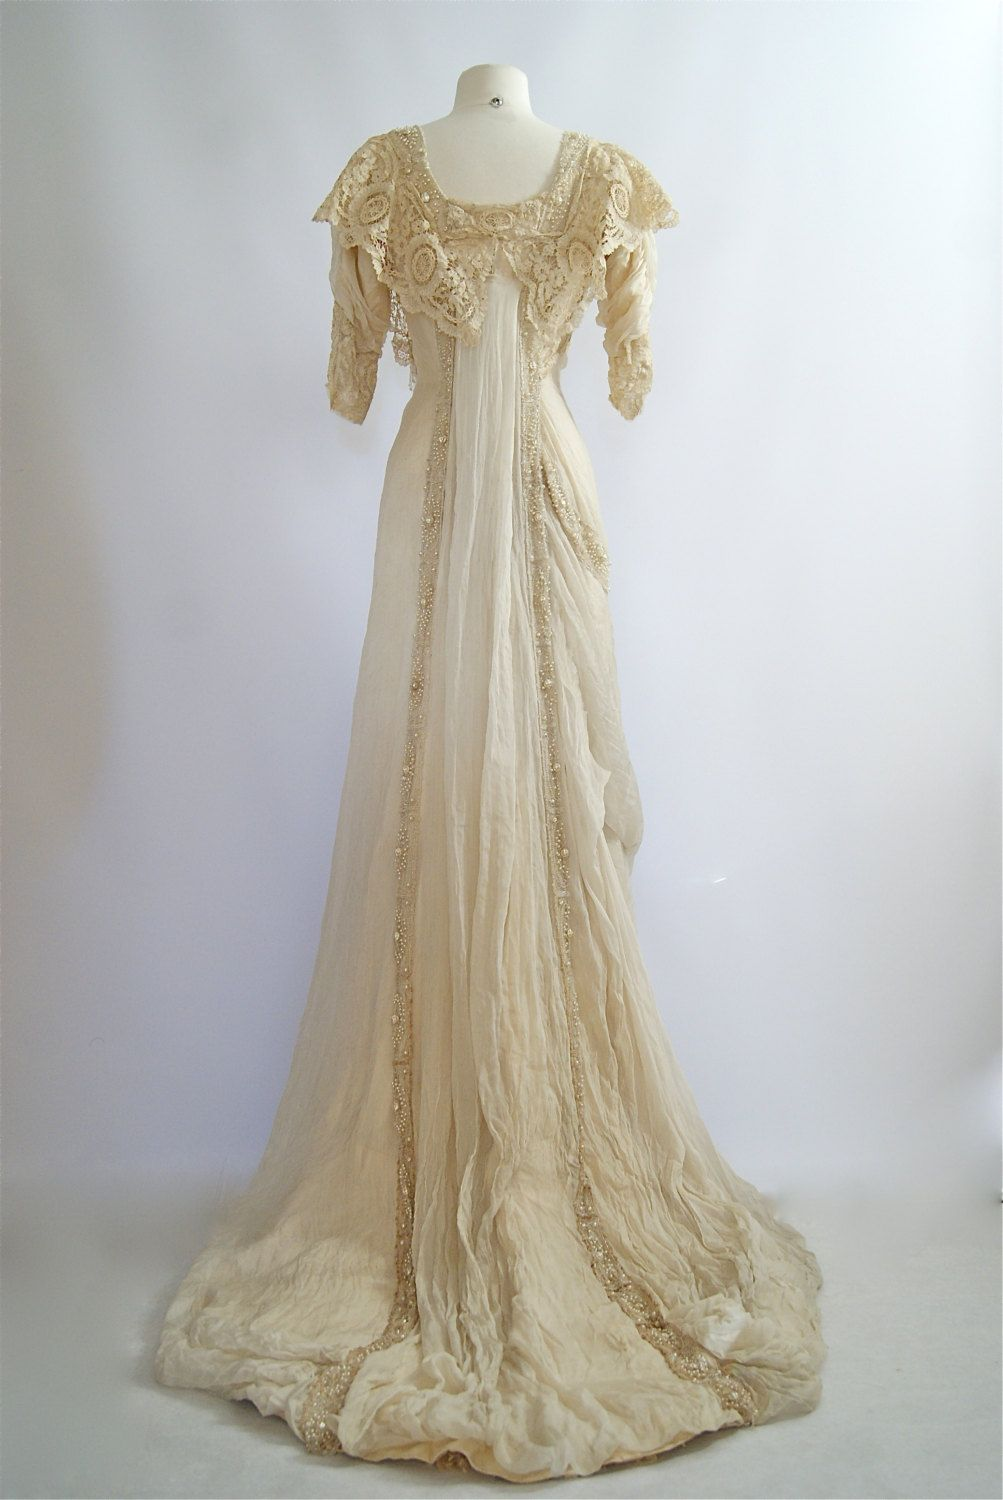 exquisite 1900s belle epoque wedding gownxtabayvintage | art